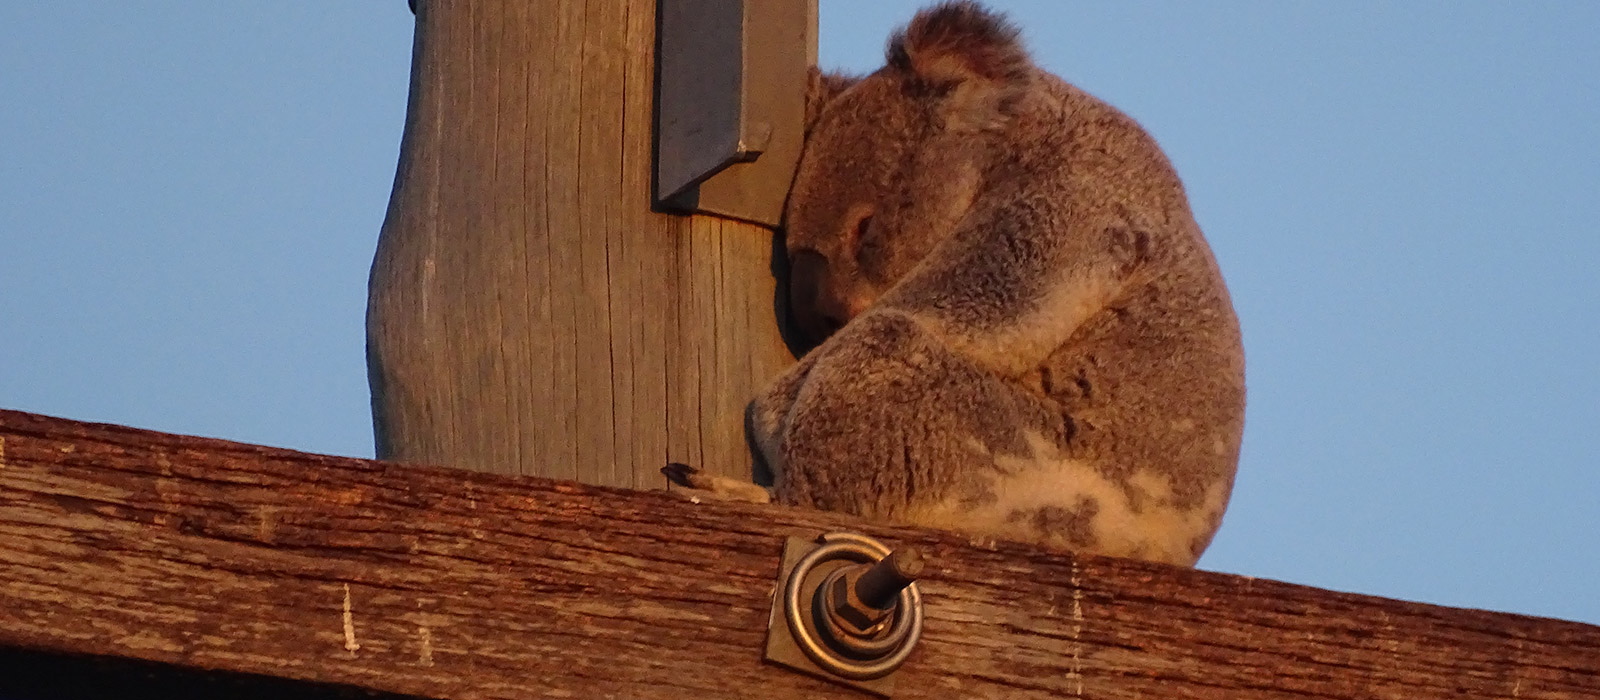 Koala taking refuge on a power pole, southeast Queensland © Clare Gover, Return to the Wild Inc. / WWF-Aus